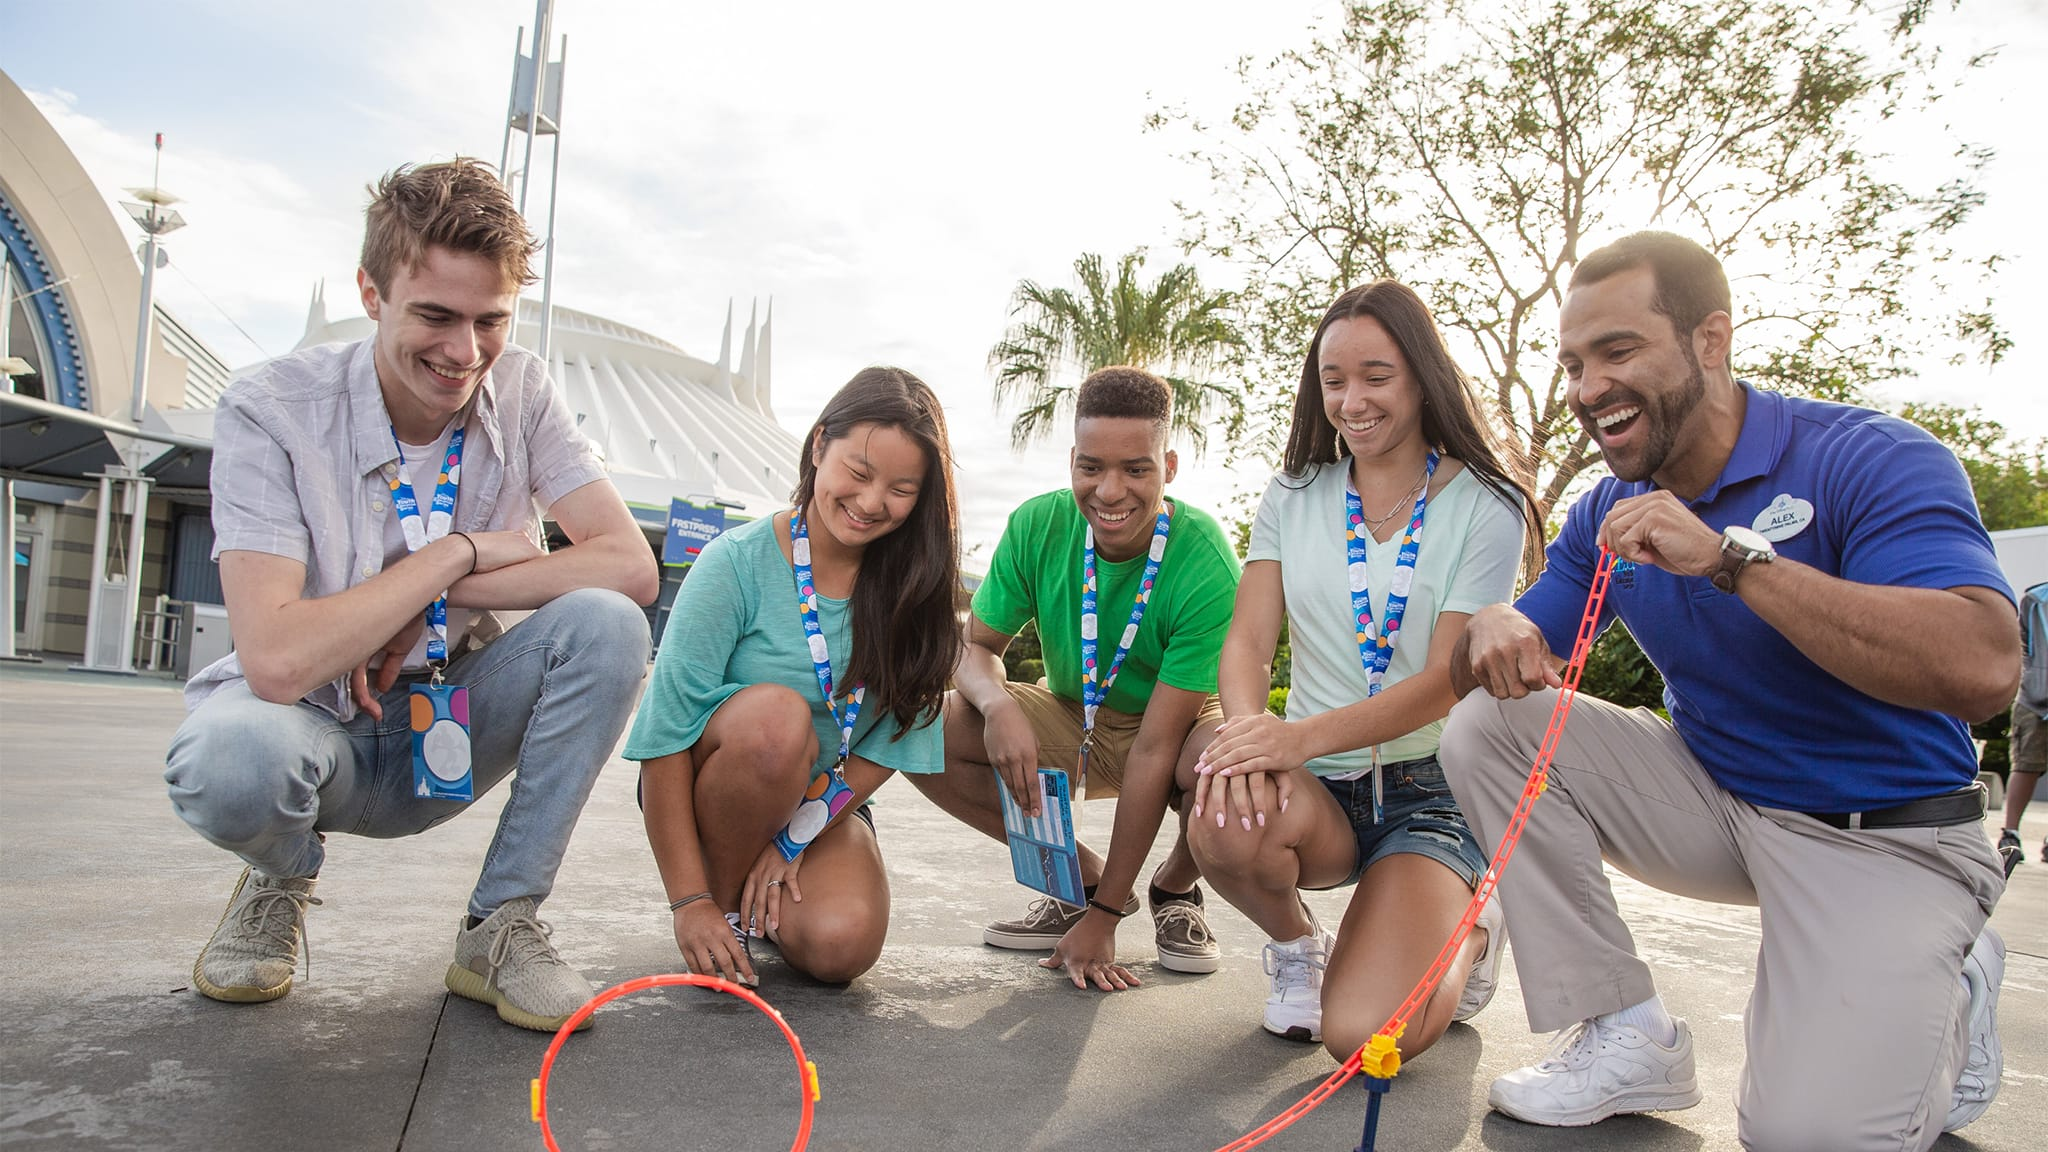 A Disney Cast Member rolls a marble down a looped plastic track as 4 teenagers observe